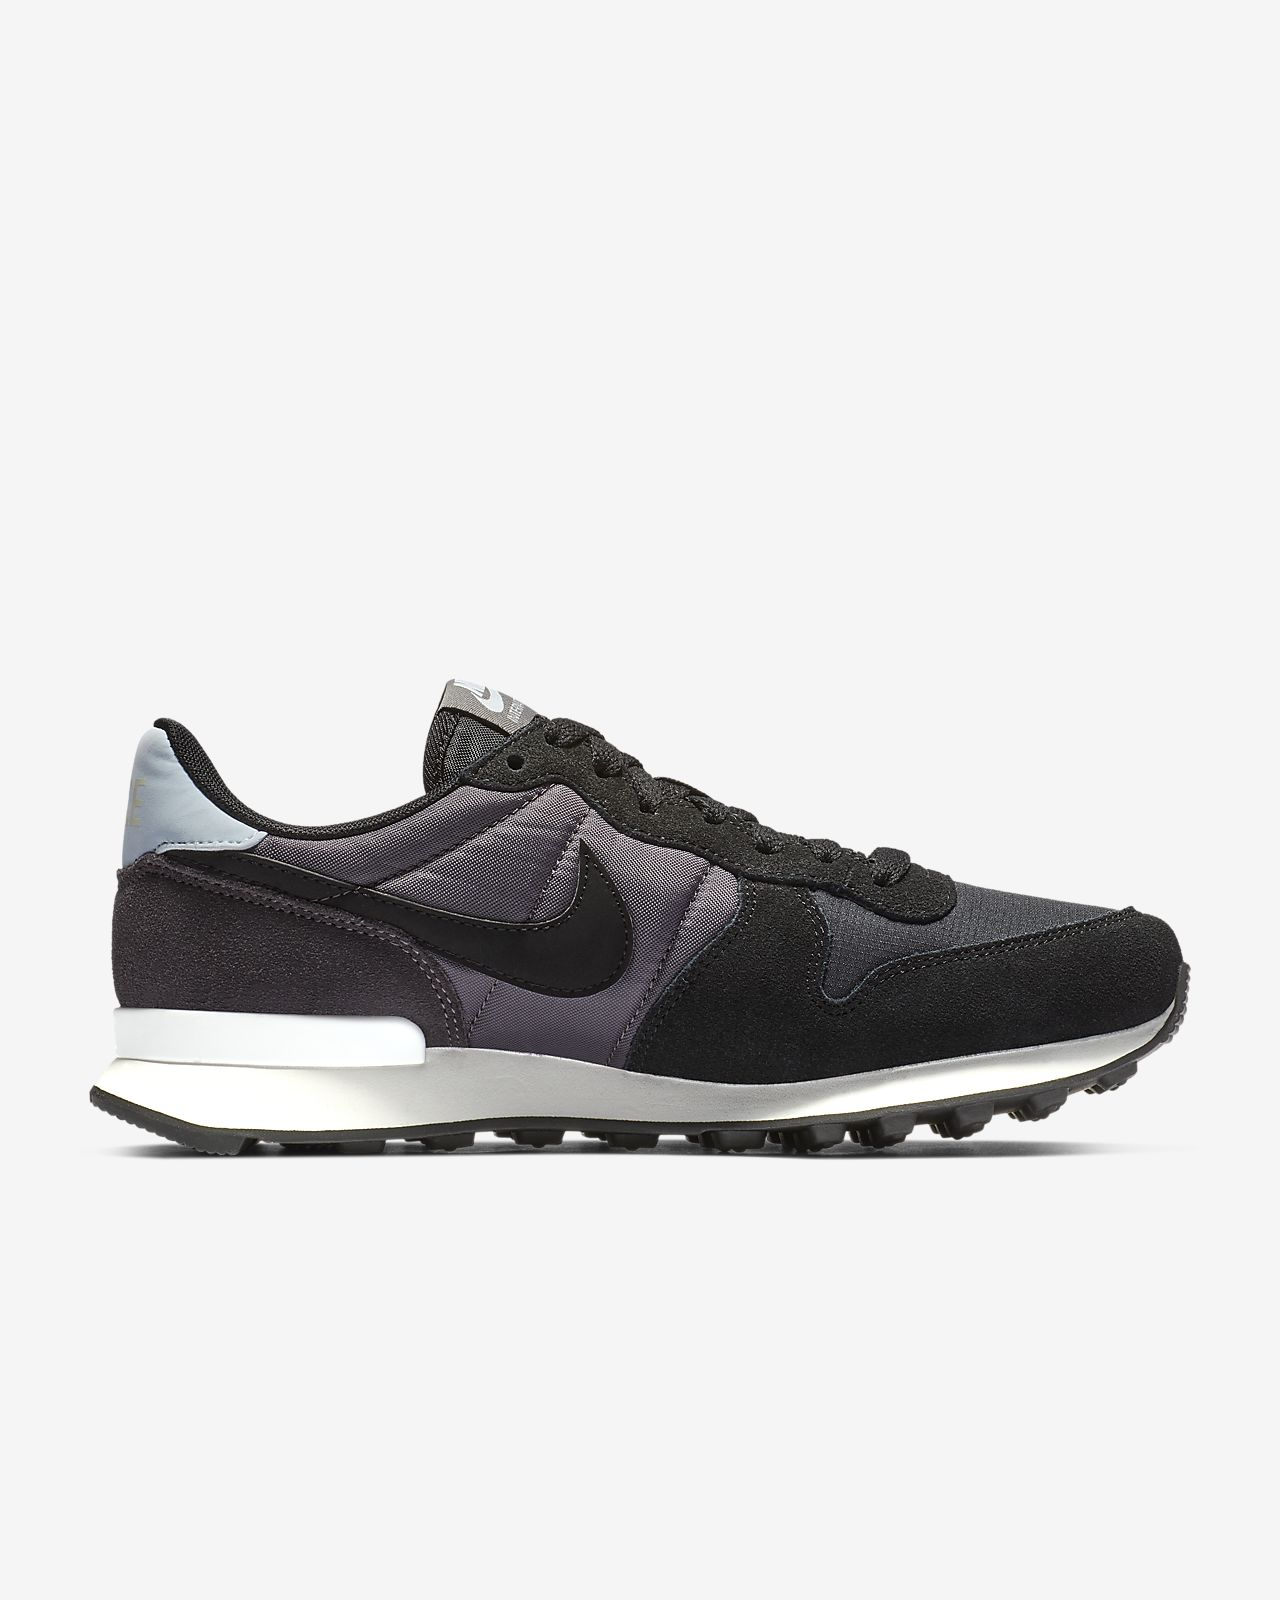 buy popular 528d3 d21c2 Low Resolution Nike Internationalist Womens Shoe Nike Internationalist  Womens Shoe